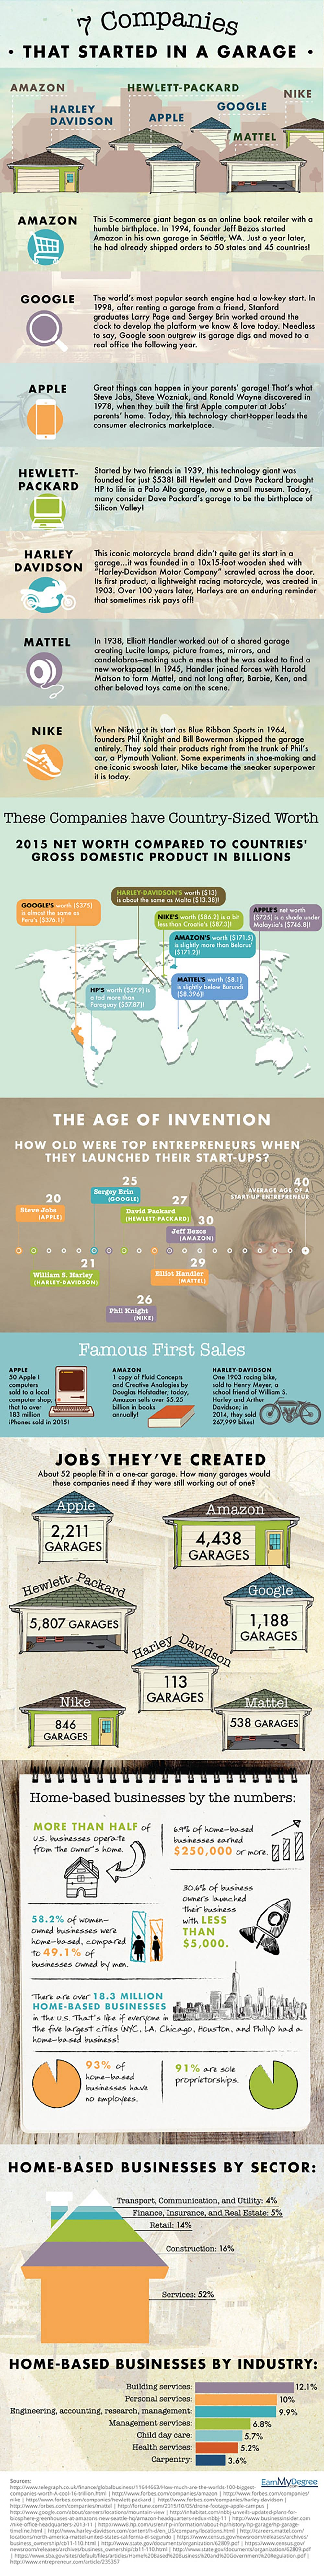 famous businesses that started in garages inforgraphic